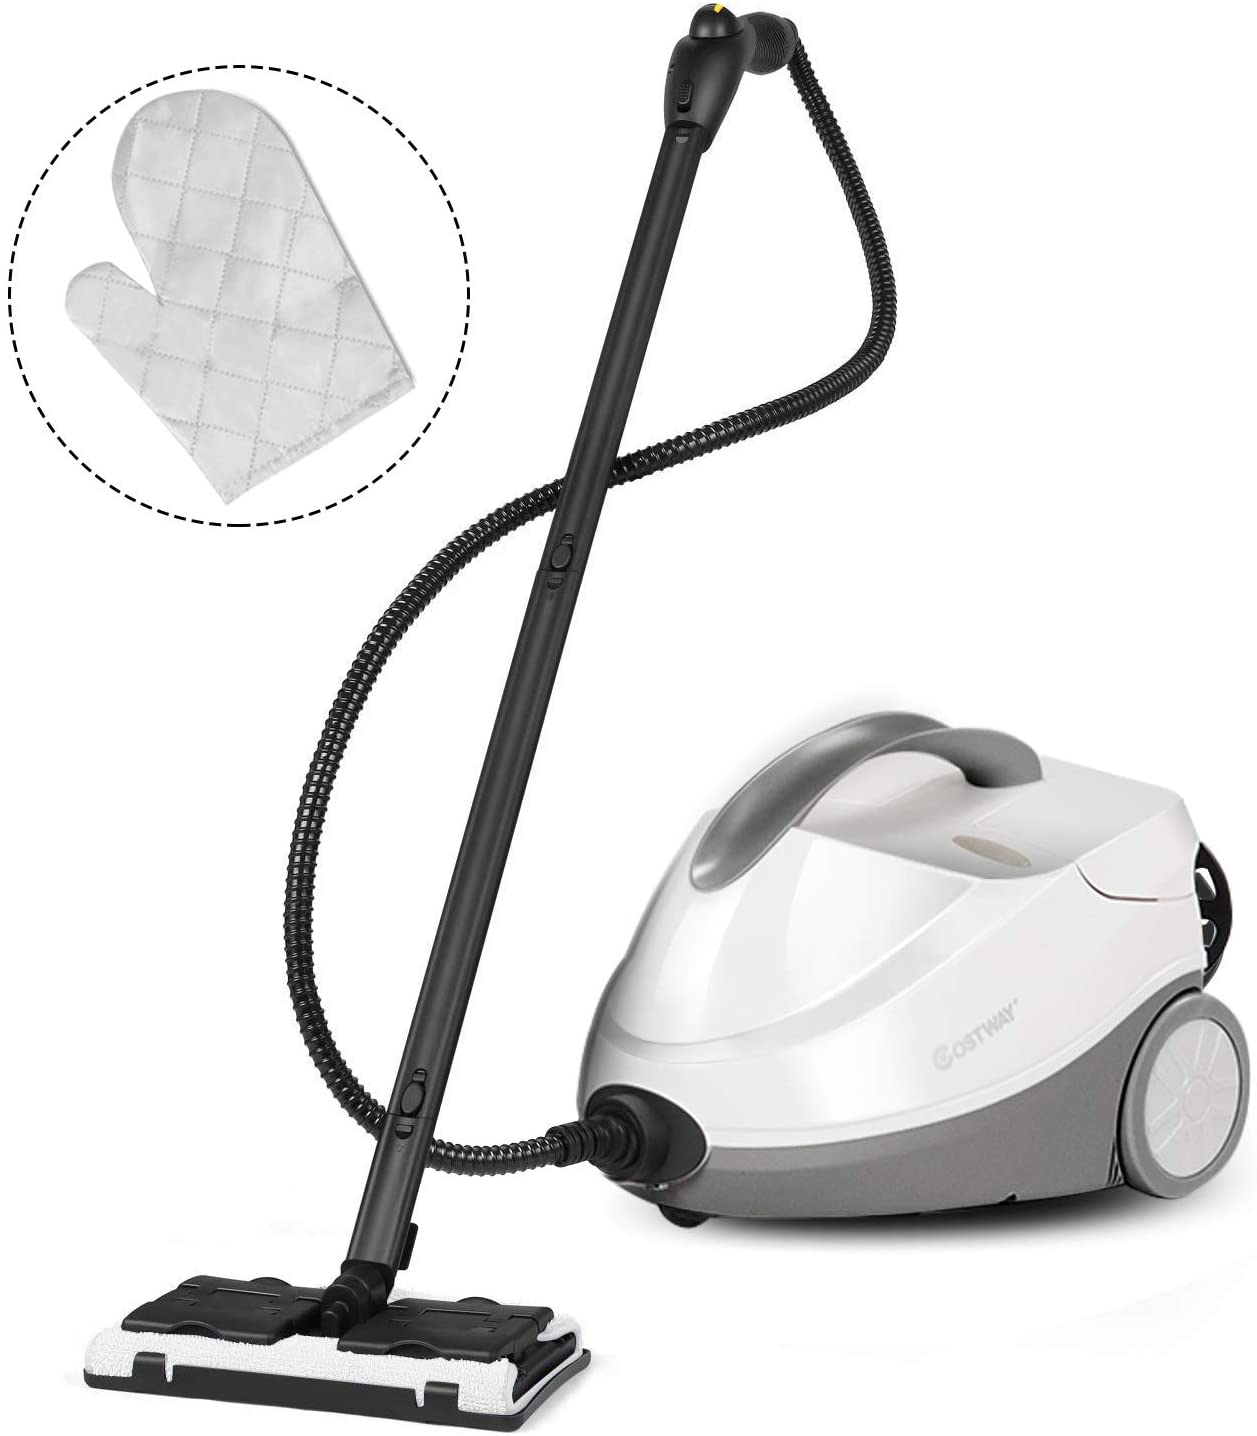 COSTWAY Multipurpose Steam Cleaner with 17 Accessories, 2000W Heavy Duty Steamer Chemical-Free Cleaning, 1.5L Dual-Tank Cleaning Machine for Carpet, Floors, Windows, and Cars